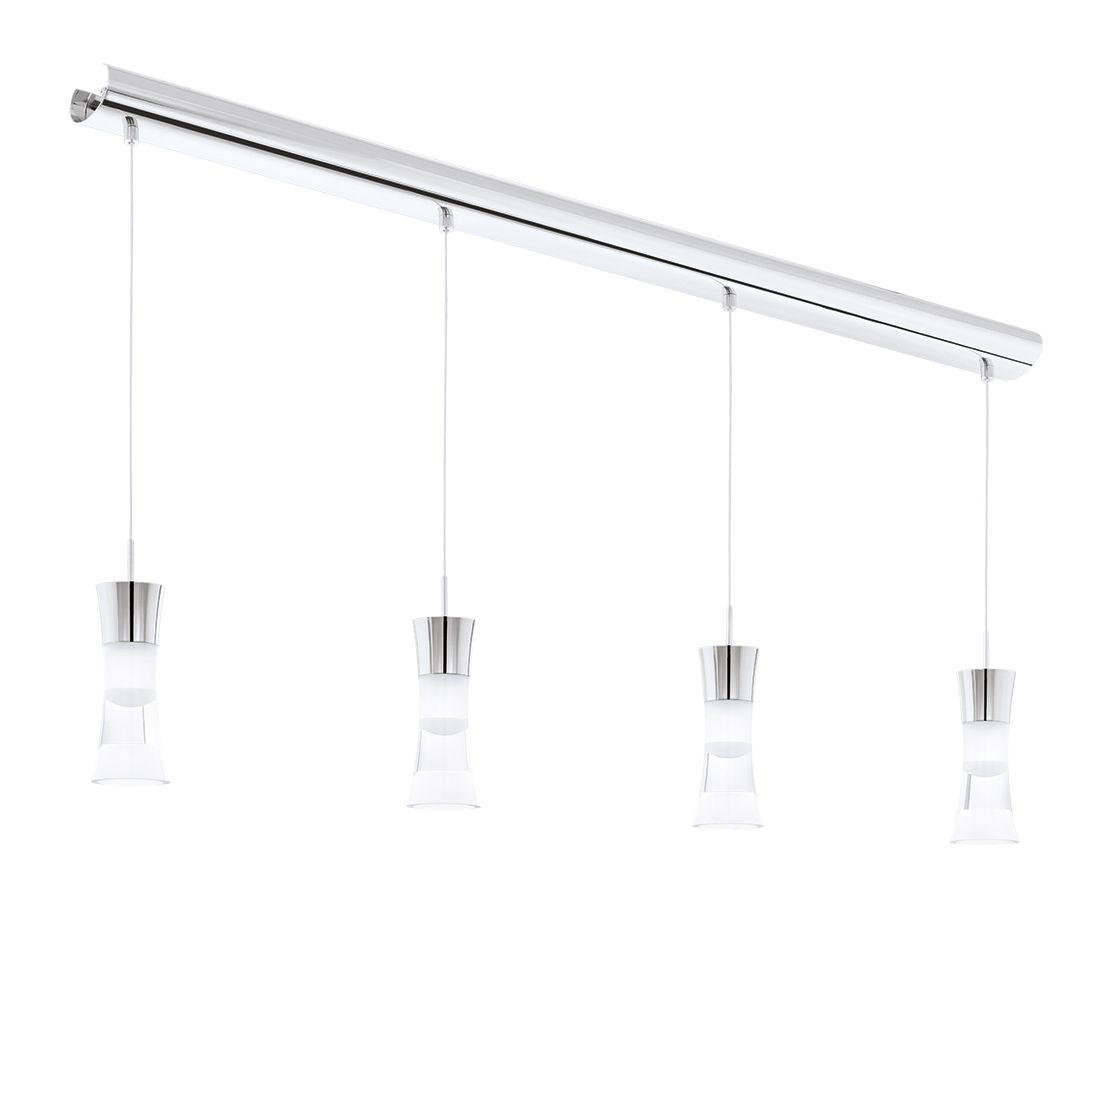 Led-hanglamp Pancento